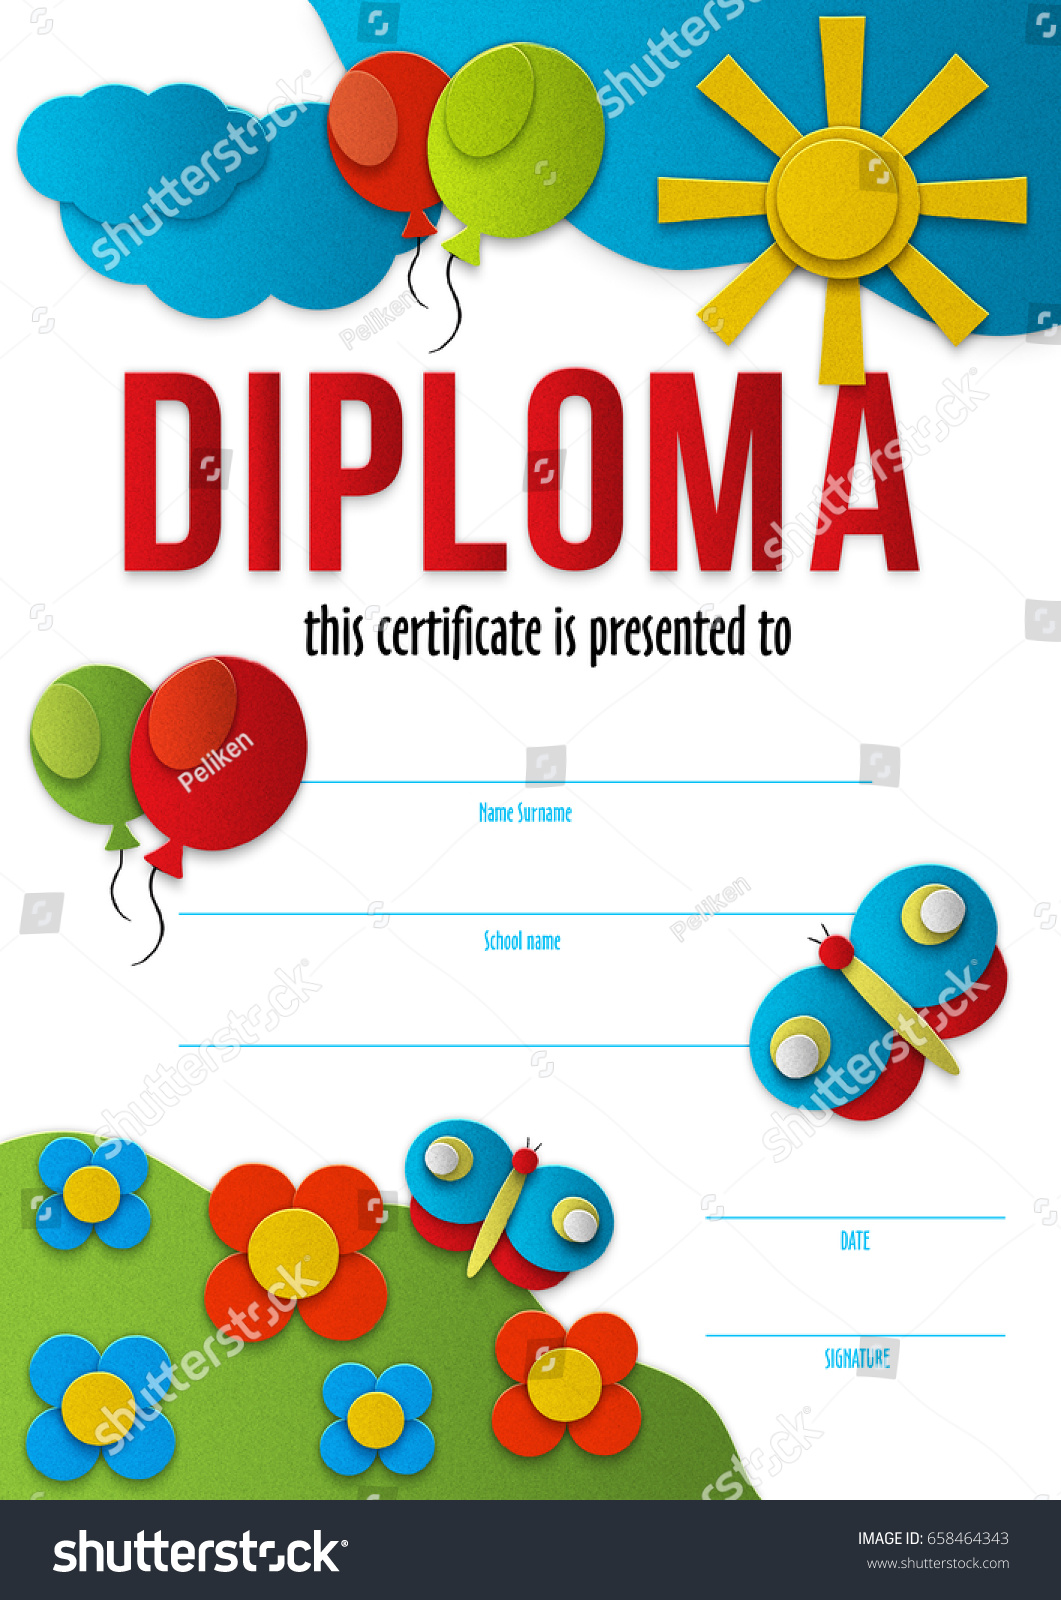 Preschool diploma template word northurthwall preschool diploma template word yelopaper